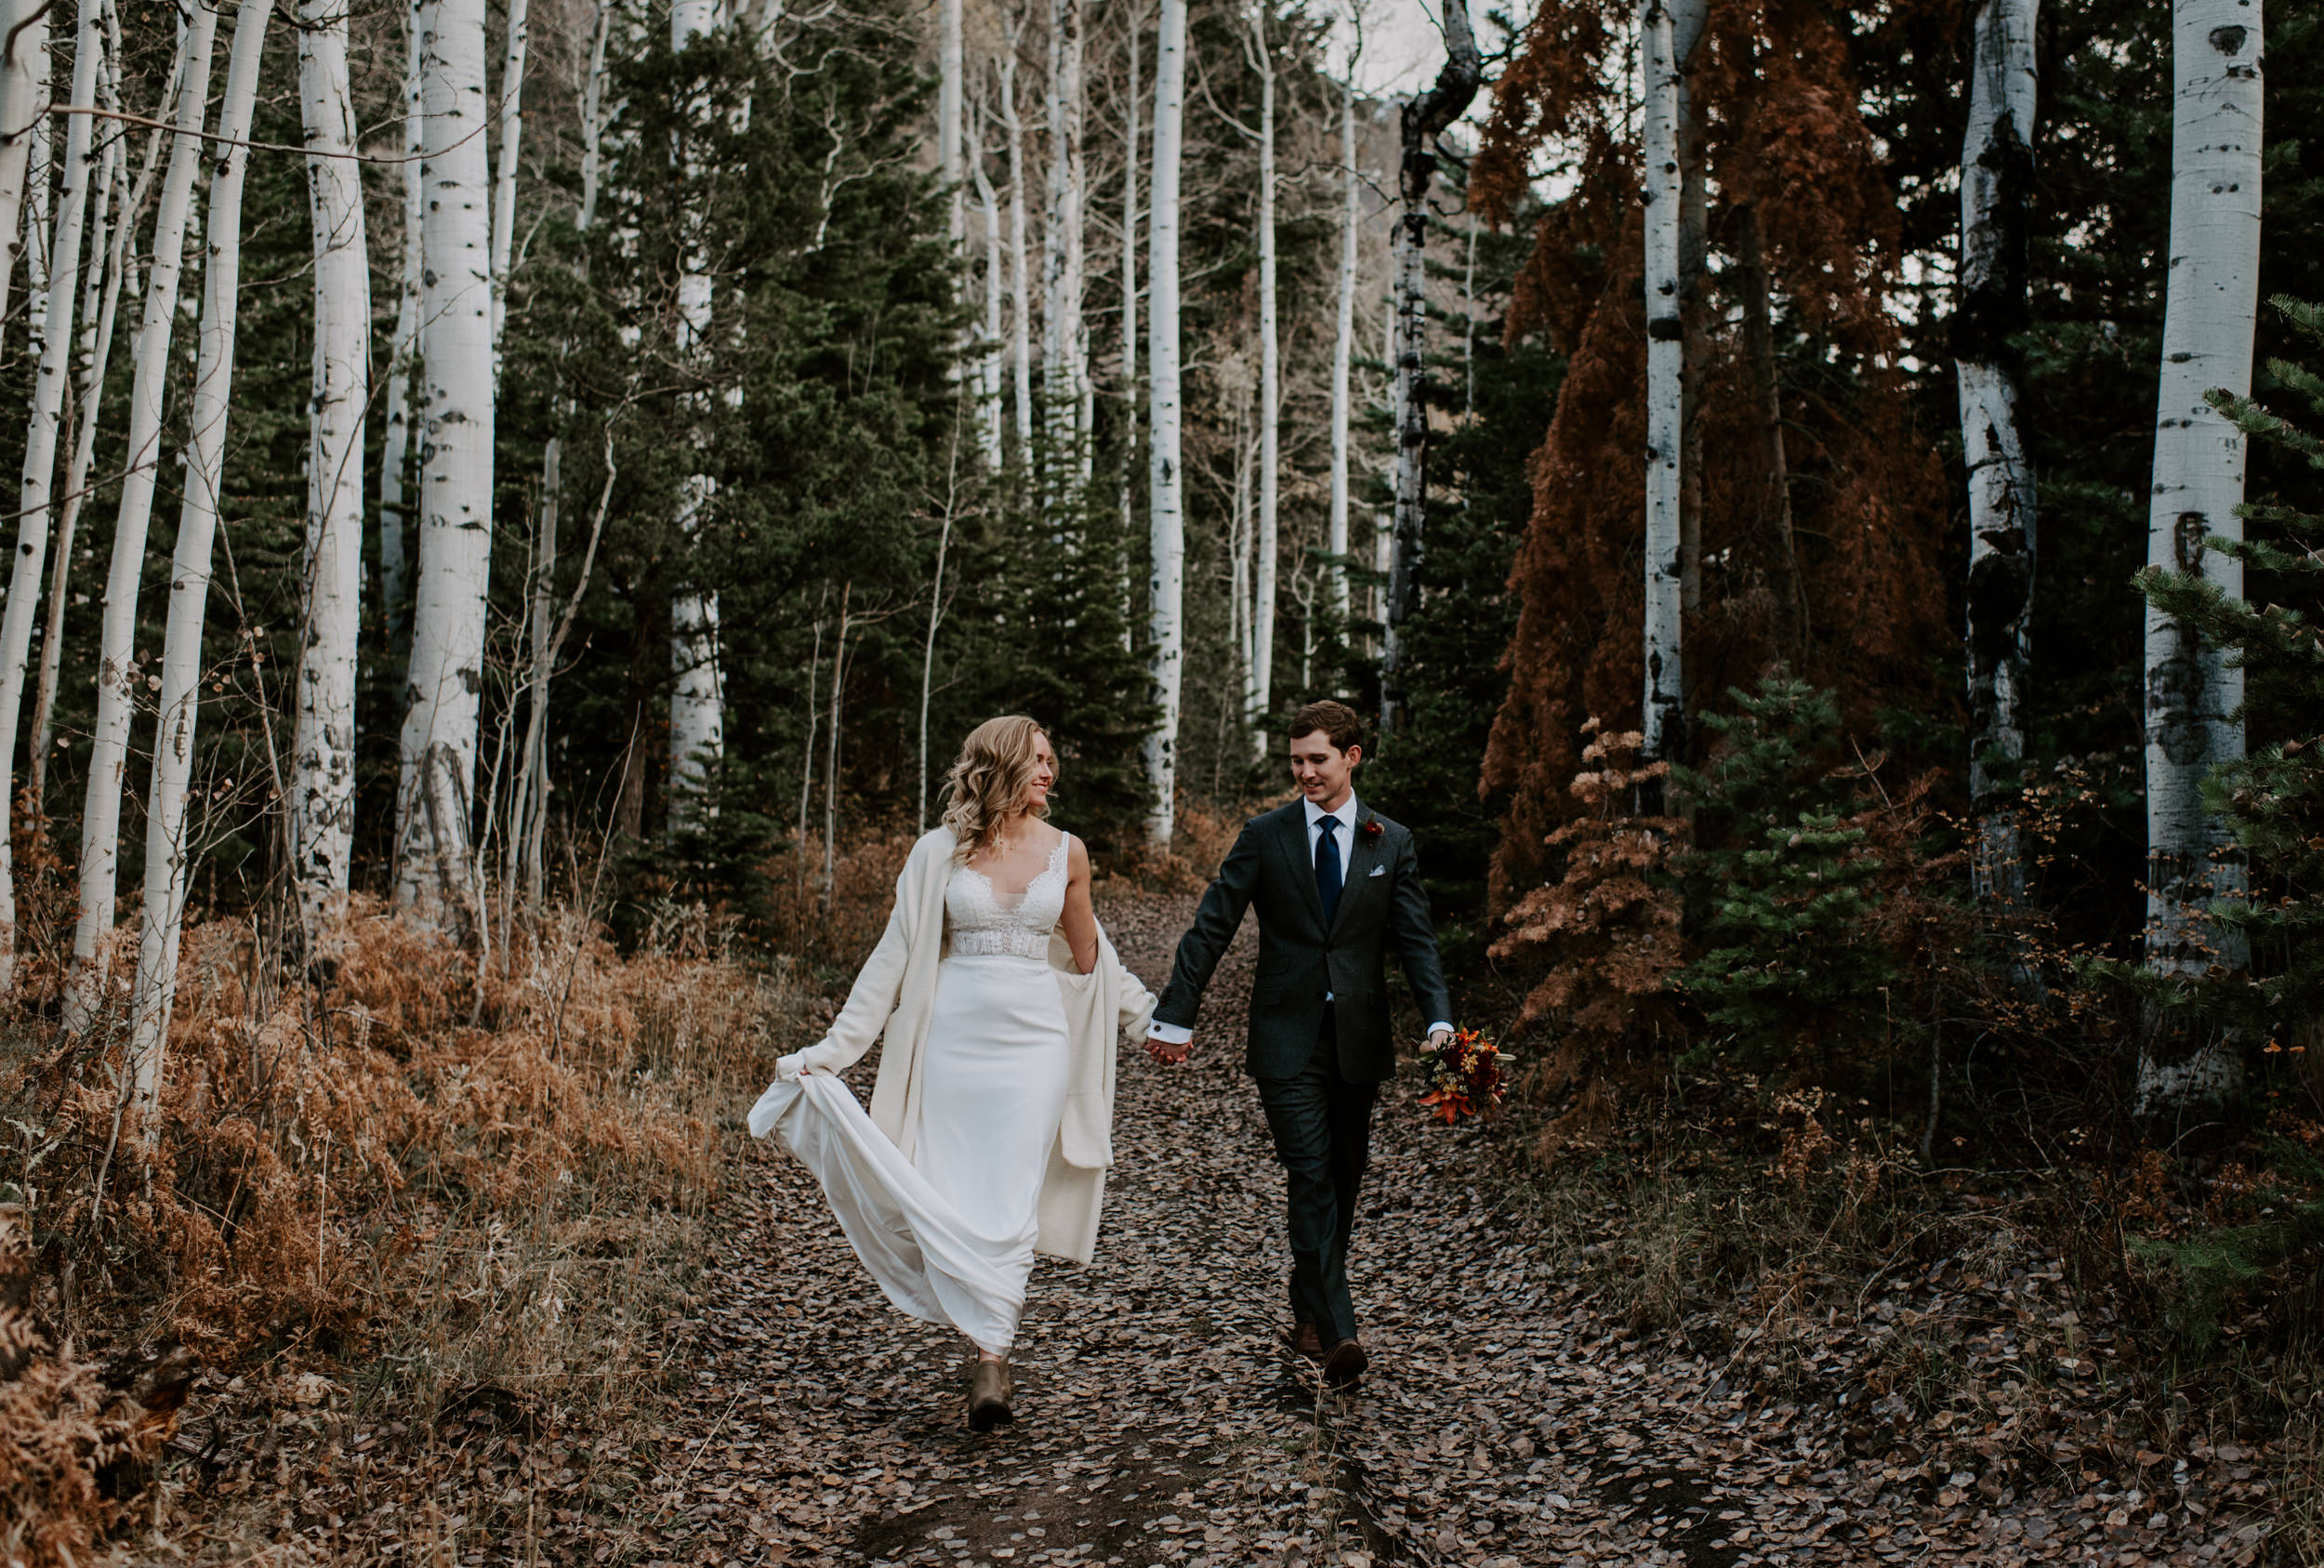 Adventure mountain elopement photos in Ouray, Colorado in the fall. Alyssa Reinhold is a Ouray wedding and elopement photographer based in Colorado.